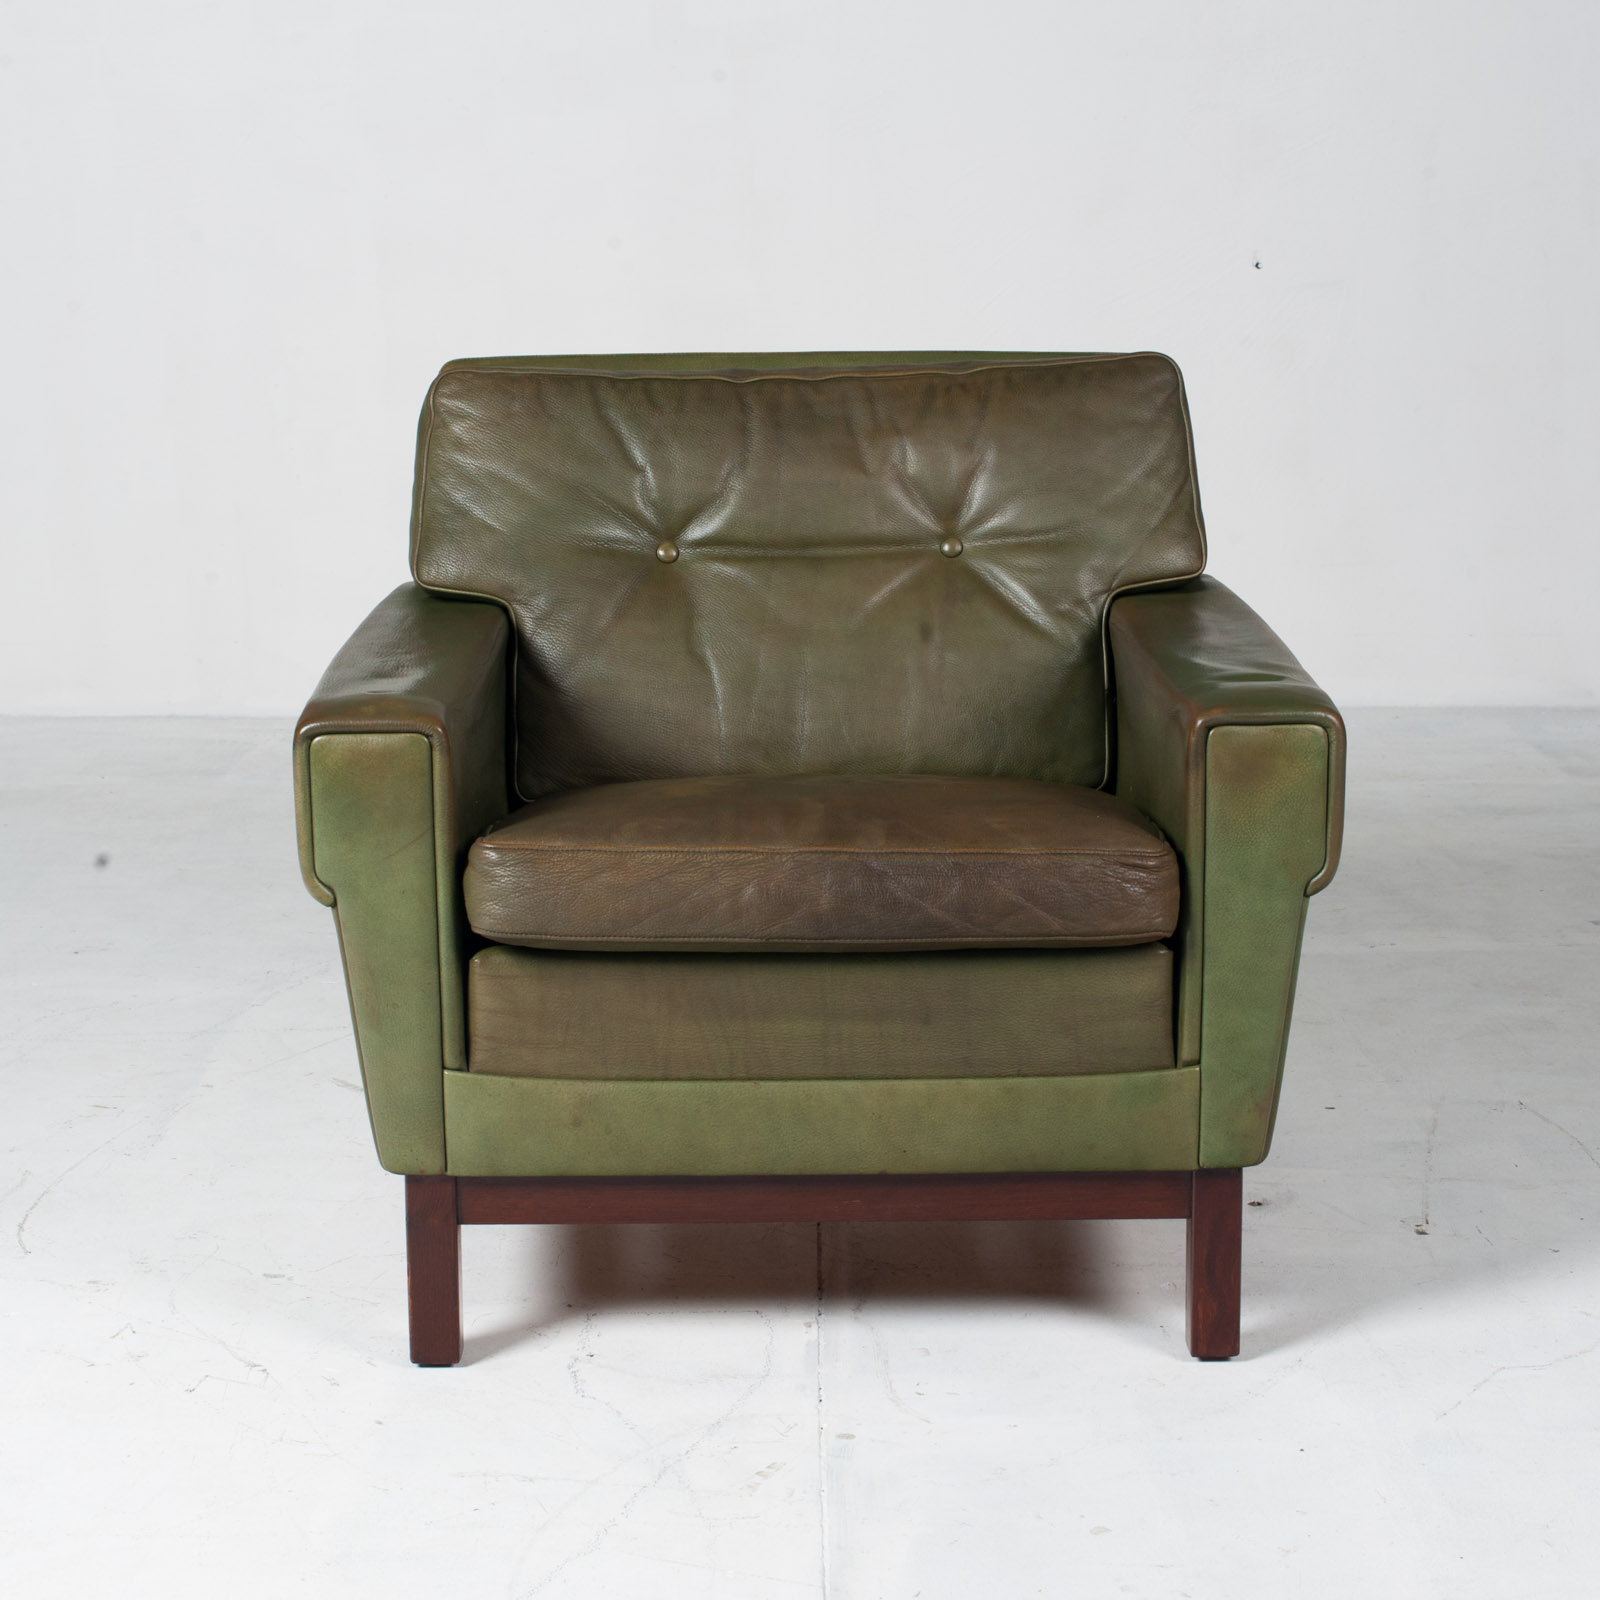 2 Armchairs In Olive Leather 1960s Denmark 001